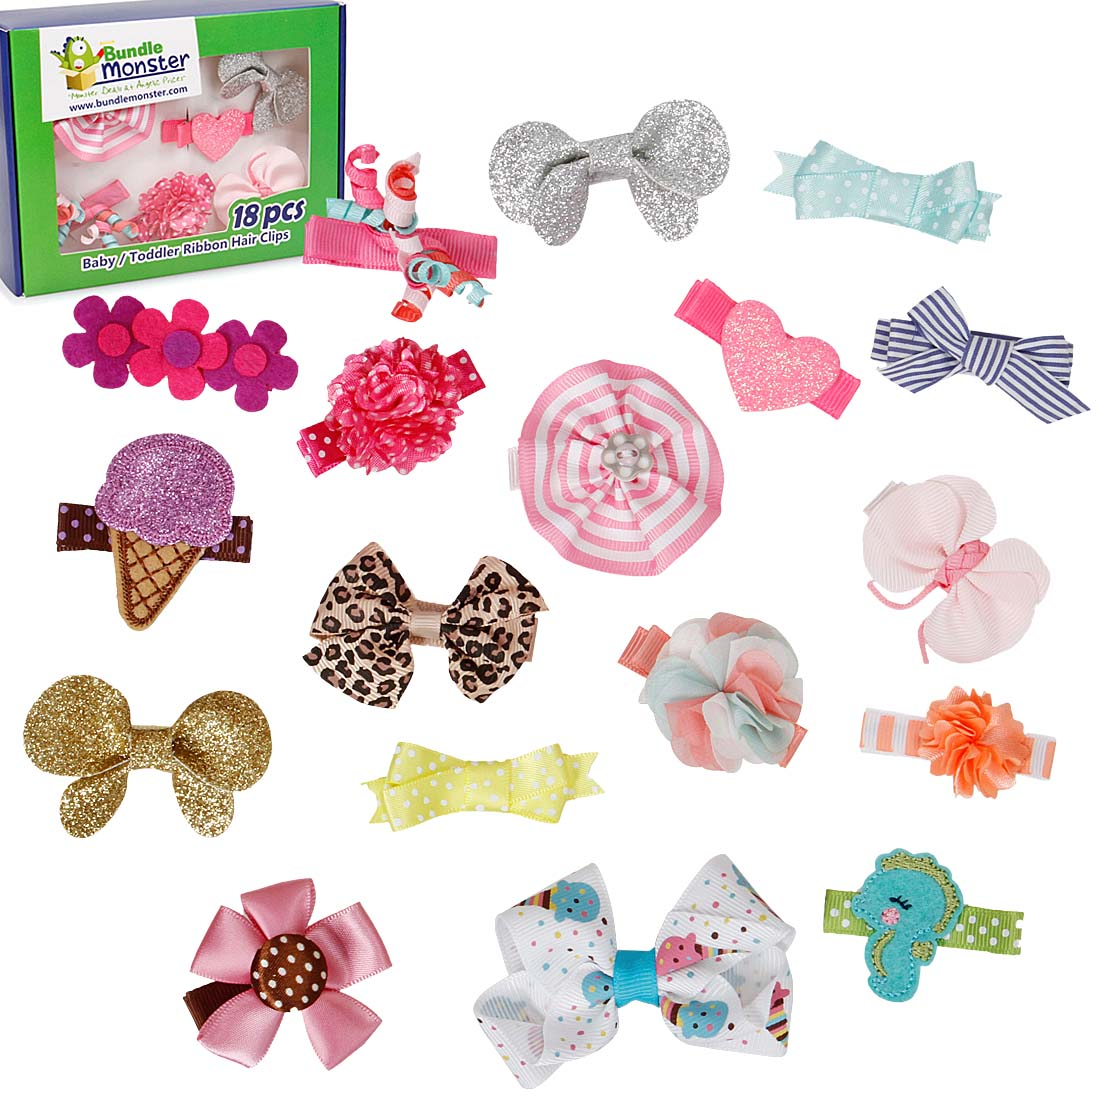 Bundle Monster 18pc Ribbon Bow Flower Mixed Design Baby Girl Toddler Hair Clip